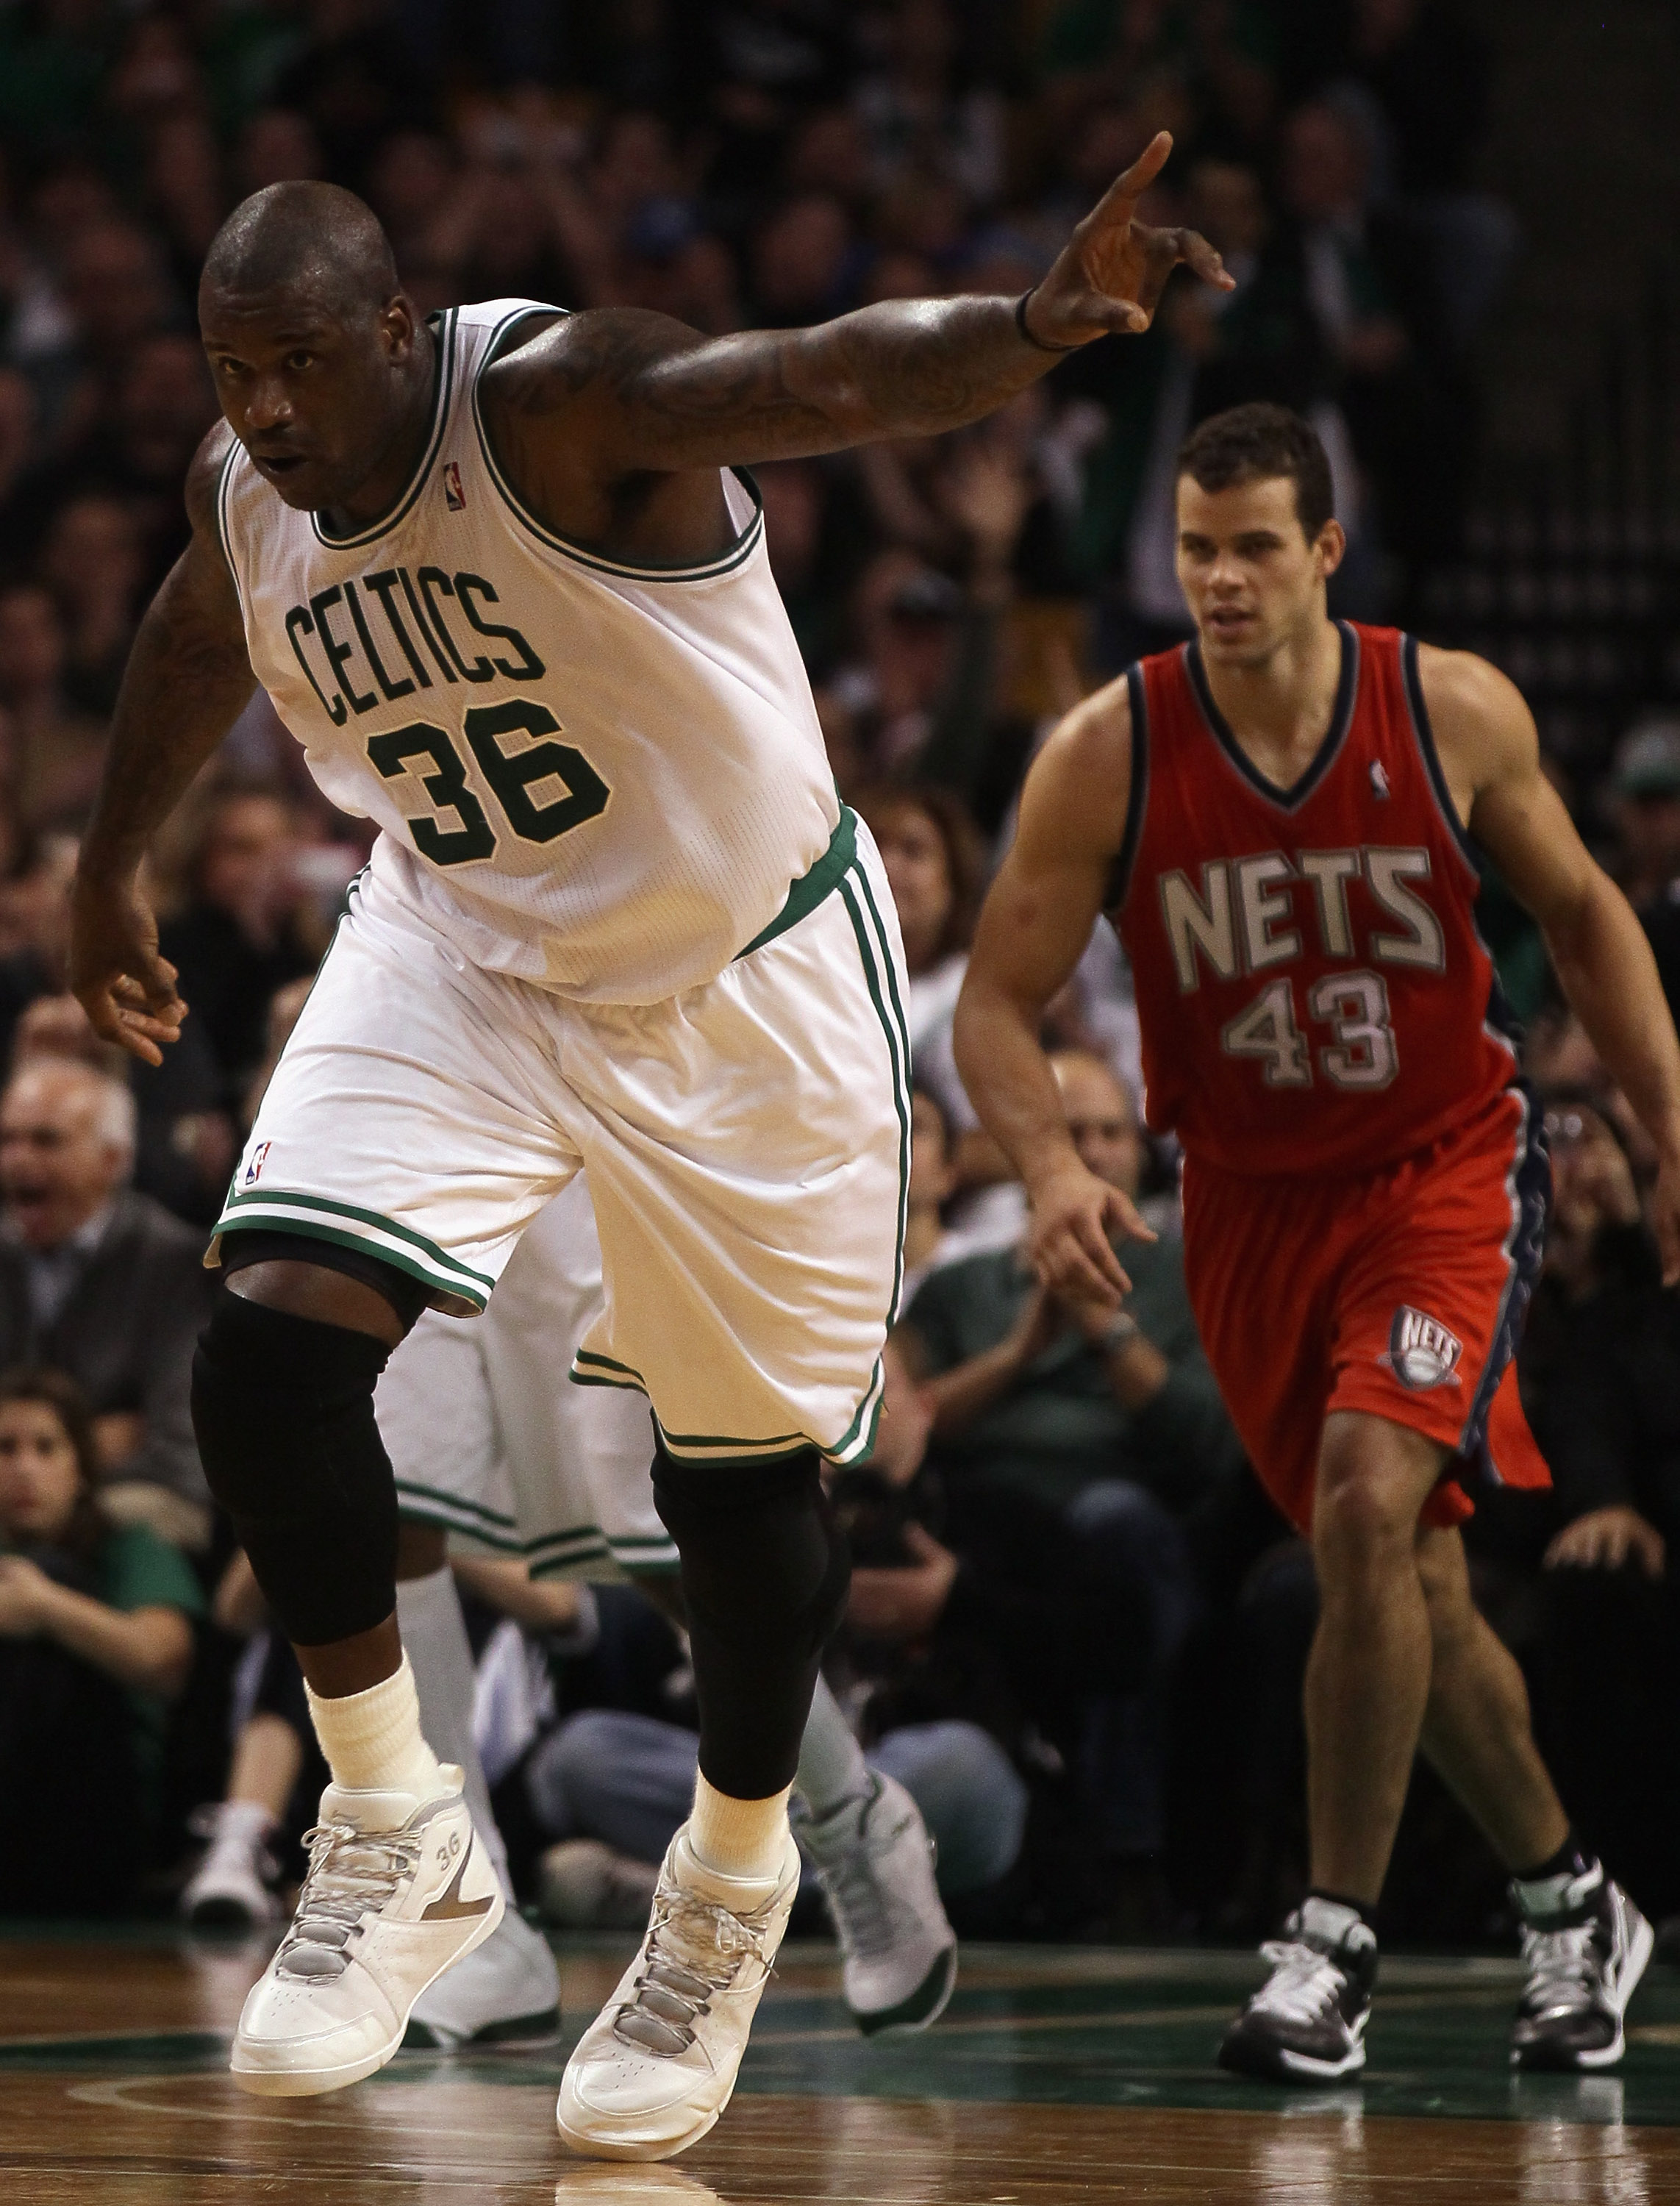 BOSTON - NOVEMBER 24:  Shaquille O'Neal #36 of the Boston Celtics celebrates his basket in the fourth quarter against the New Jersey Nets on November 24, 2010 at the TD Garden in Boston, Massachusetts. The Celtics defeated the nets 89-83. NOTE TO USER: Us